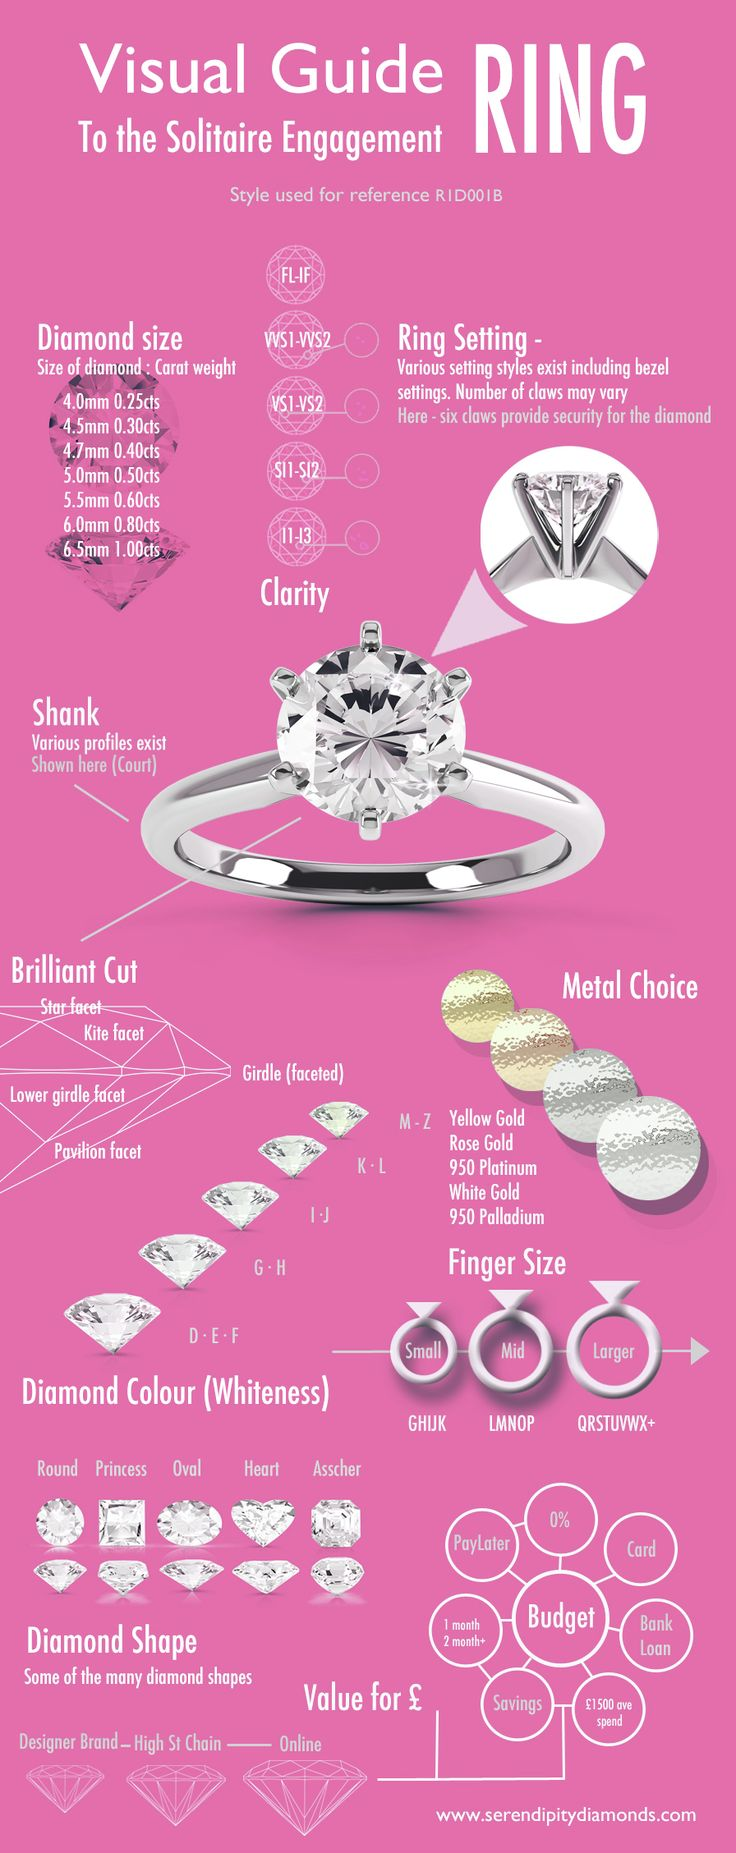 23 best Unique and Unusual Engagement Rings images on Pinterest ...